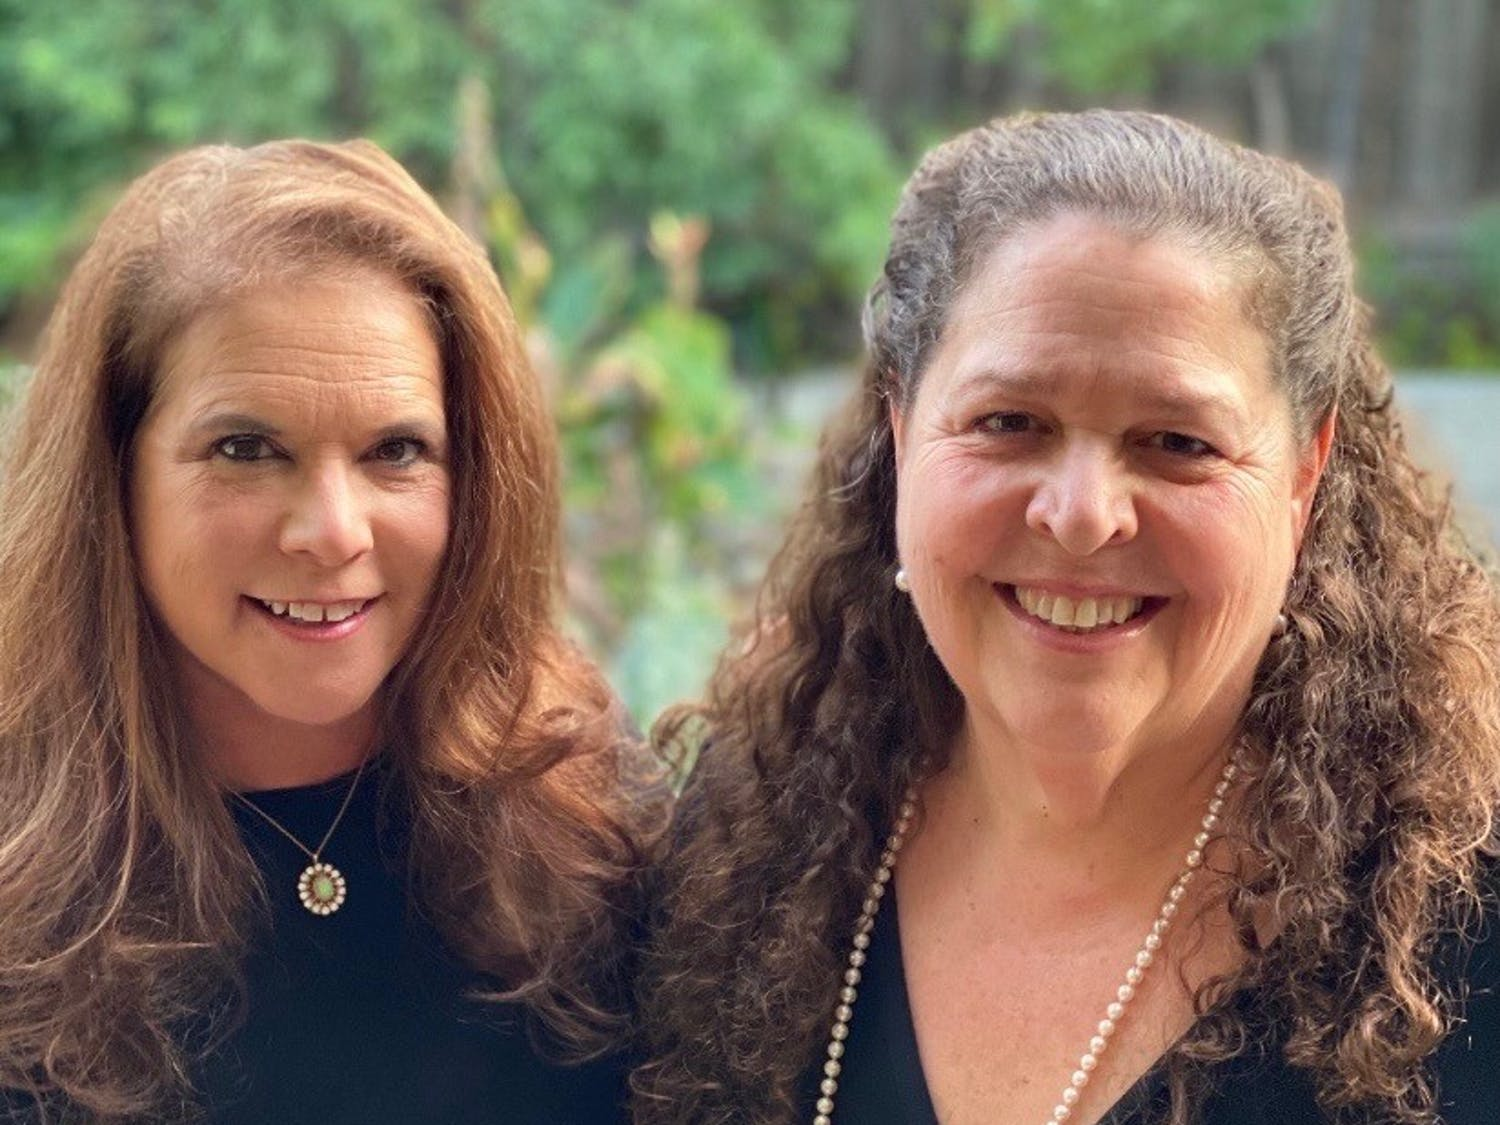 Randi Emerson (left) and Carol Marshall (right), the founders of FIlmFest 919, a film festival based in Chapel Hill, North Carolina.Photo courtesy of Emerson and Marshall.